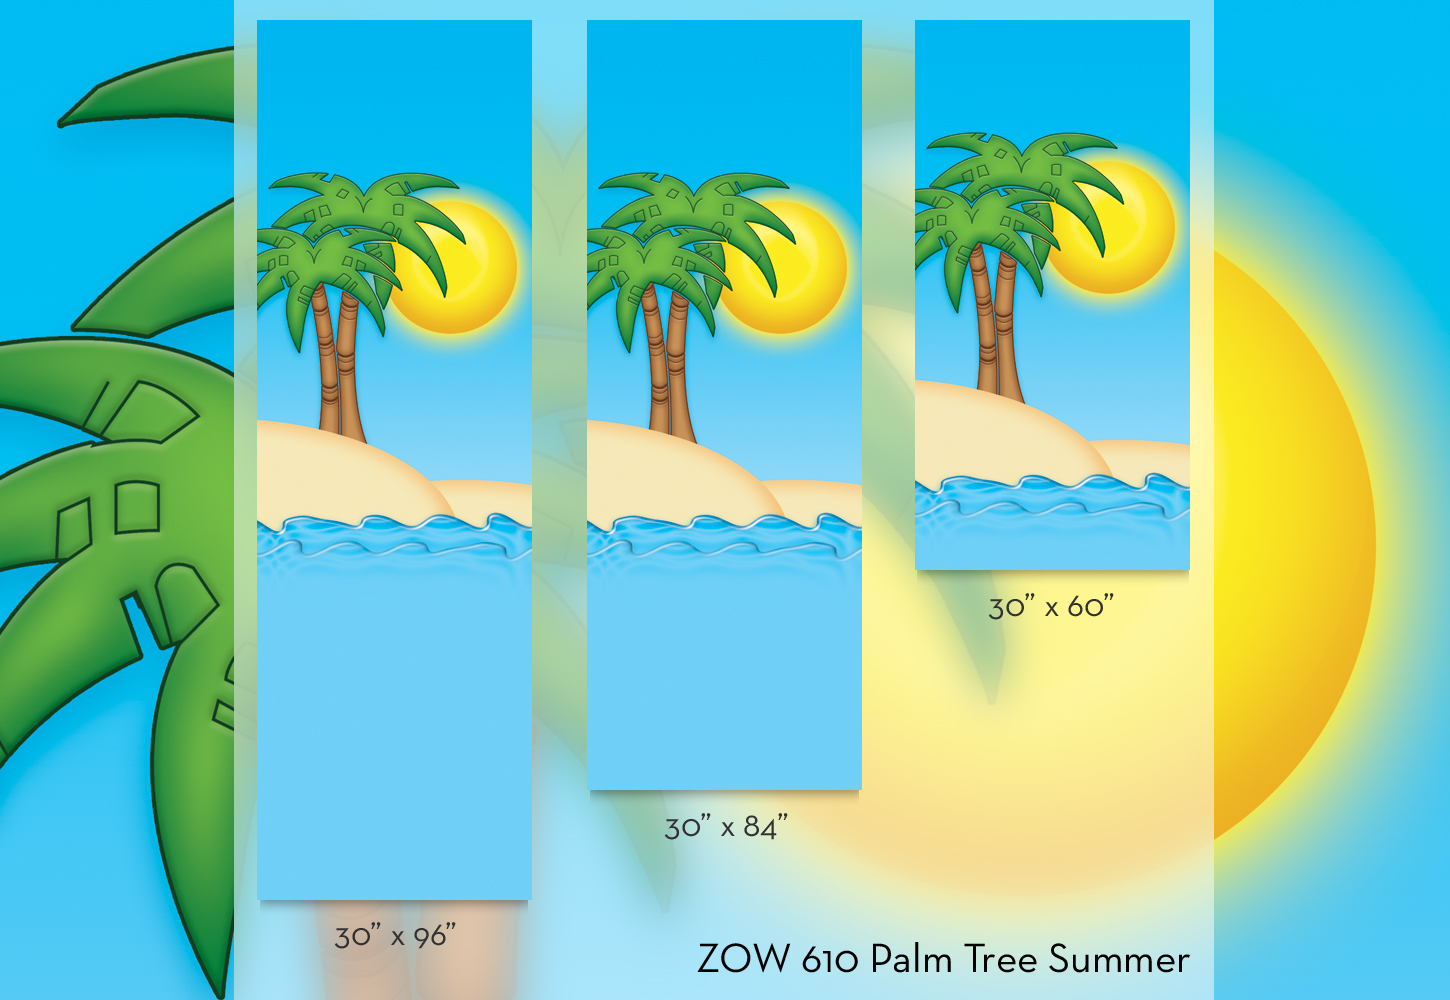 ZOW 610 Palm Tree Summer